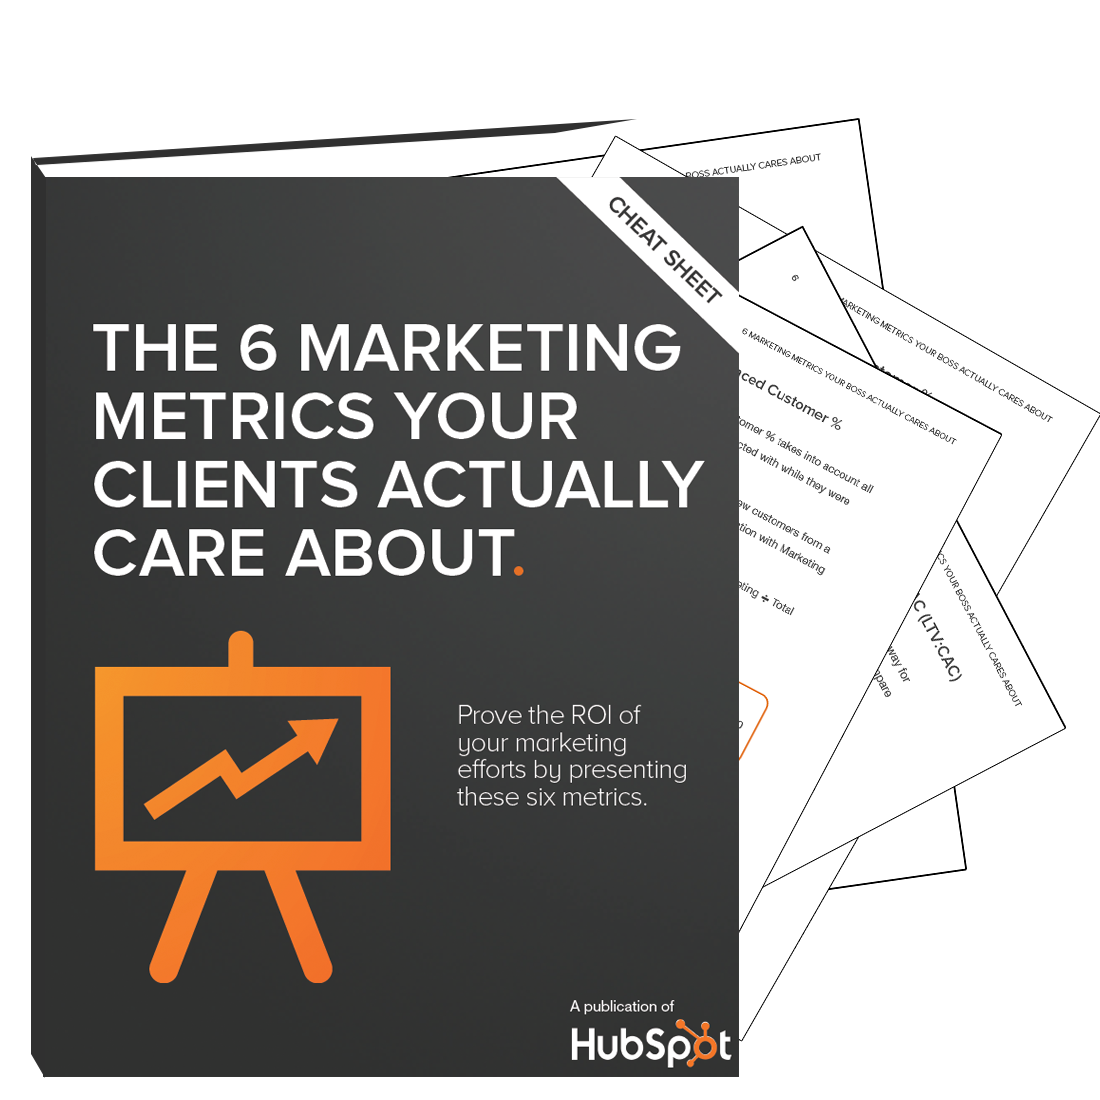 6 Metrics Your Clients Actually Care About